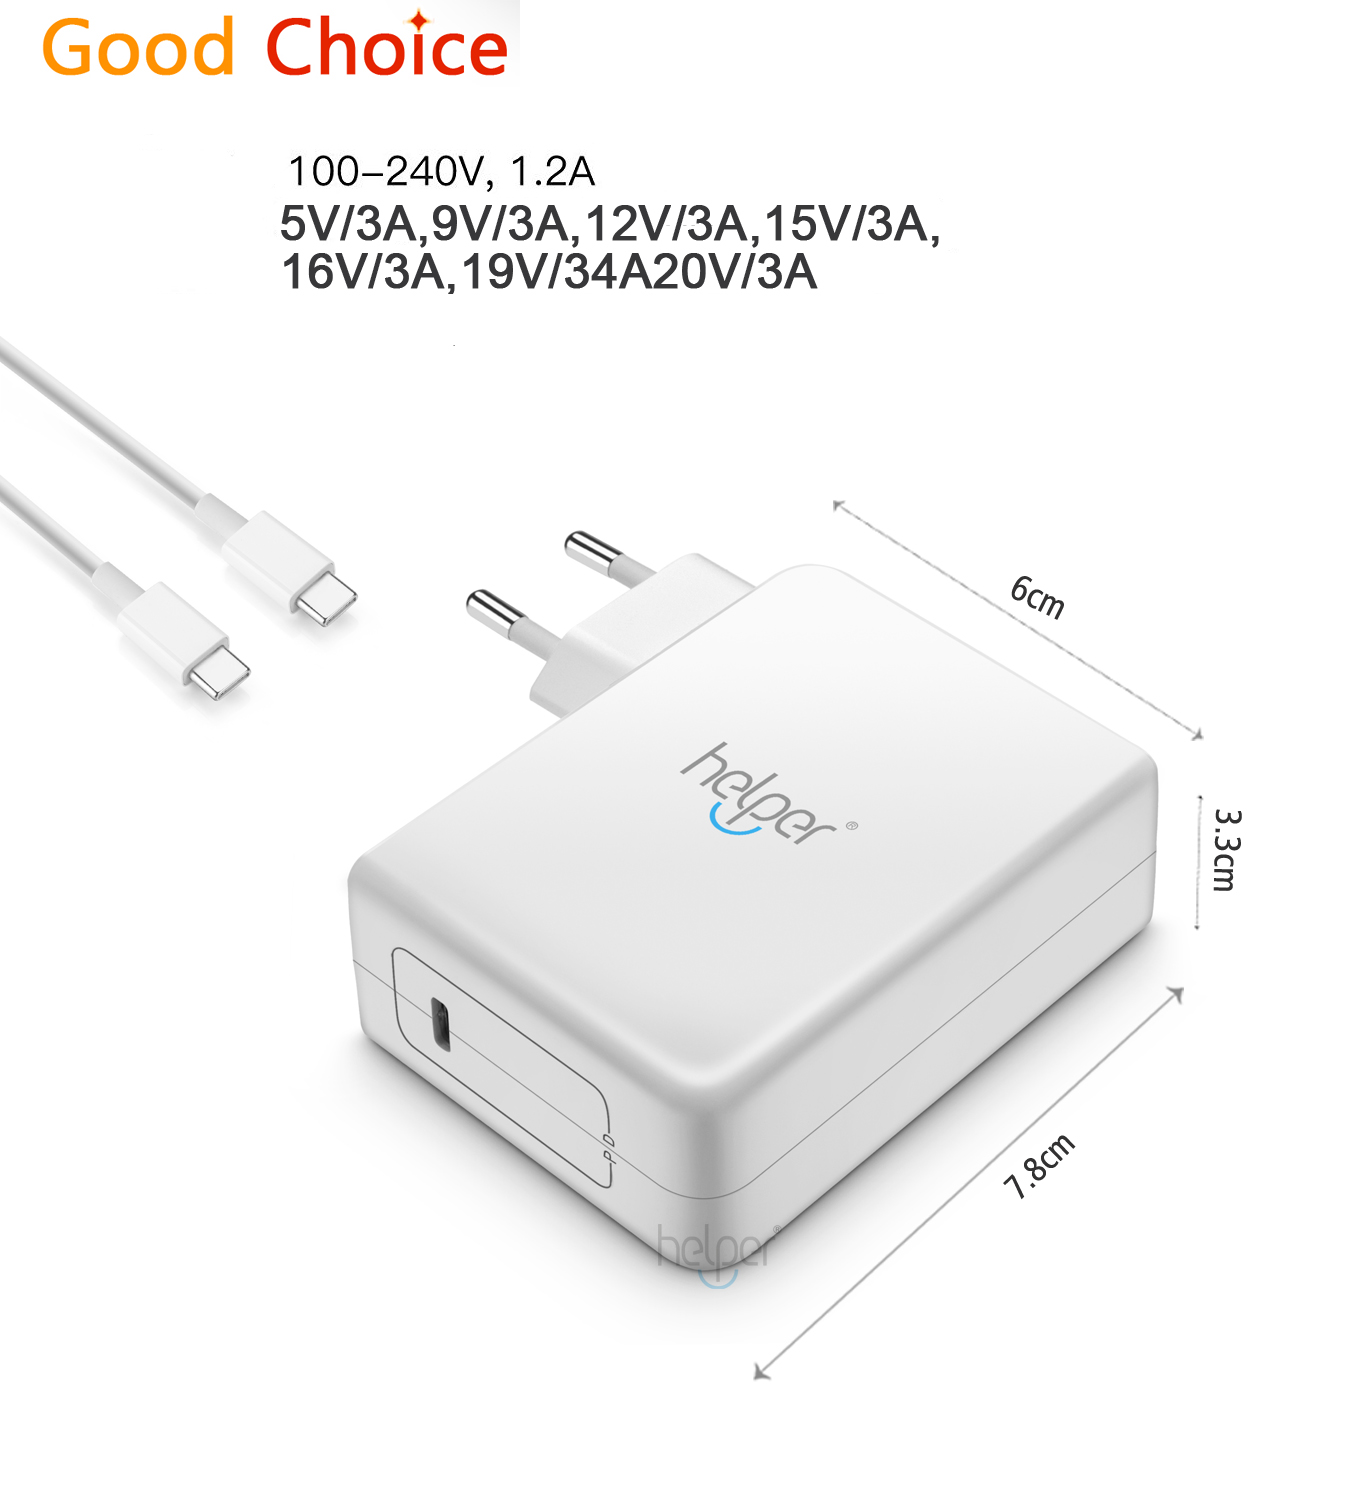 Helper-15W-45W-60W-USB-Type-C-Wall-Charger-Fast-Charging-Power-Adapter-for-HUAWEI-MateBook.jpg?fit=1371%2C1500